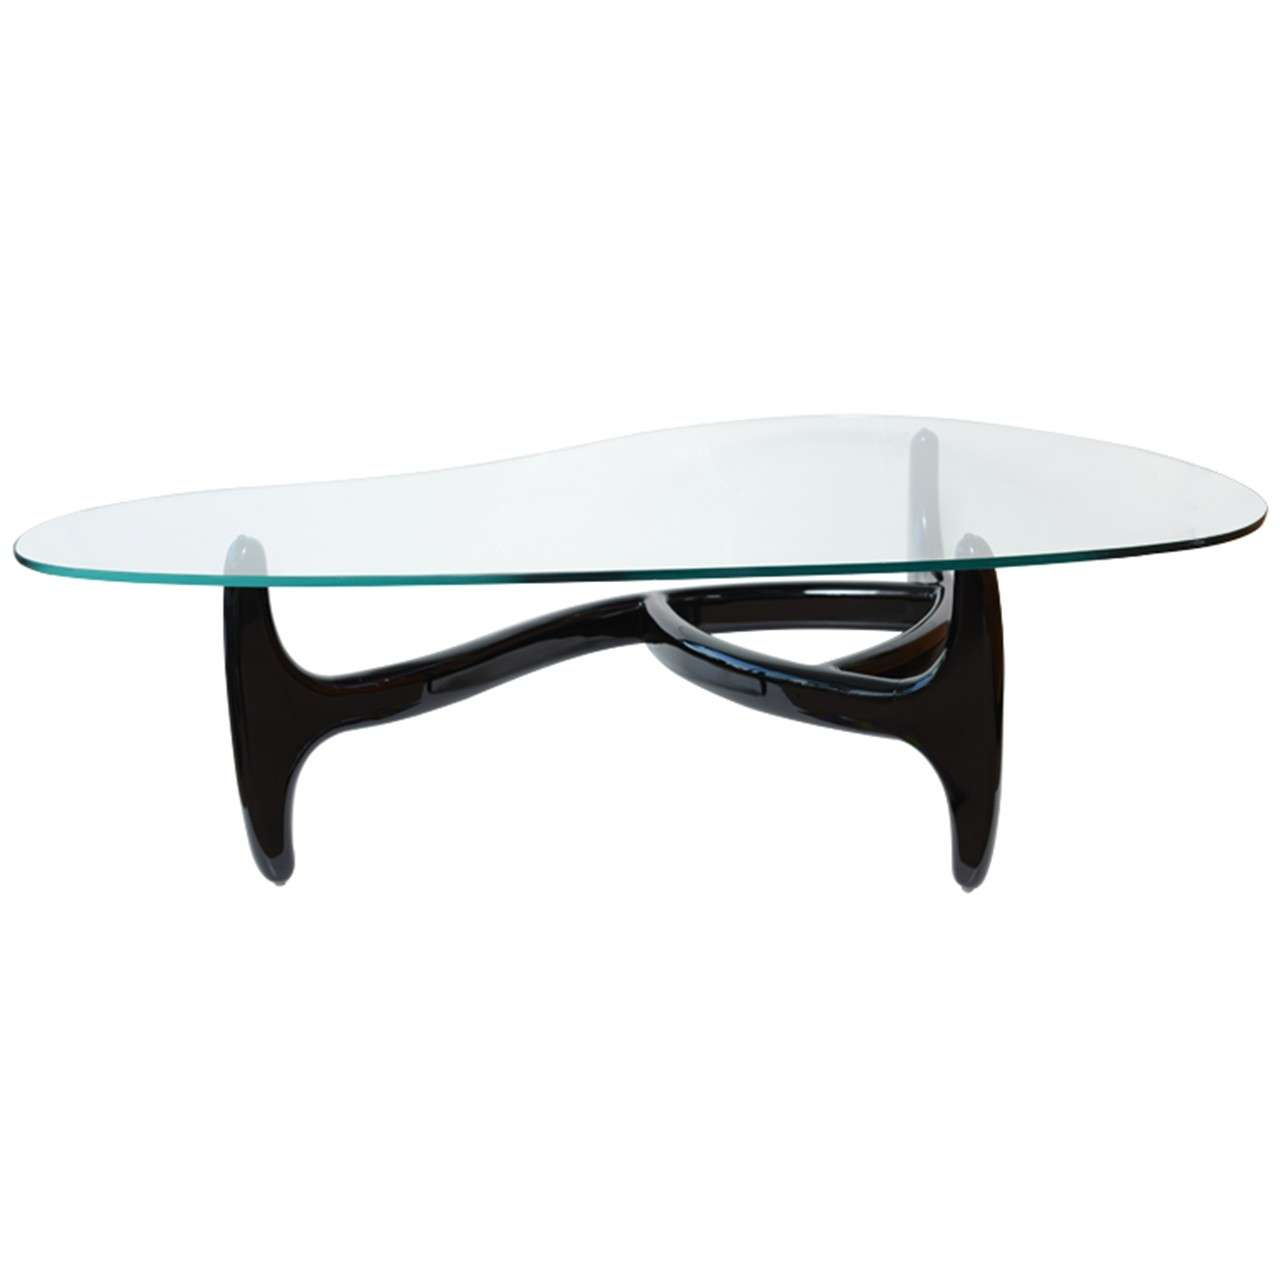 Designer Architectural Kidney Shaped Coffee Table At 1stdibs